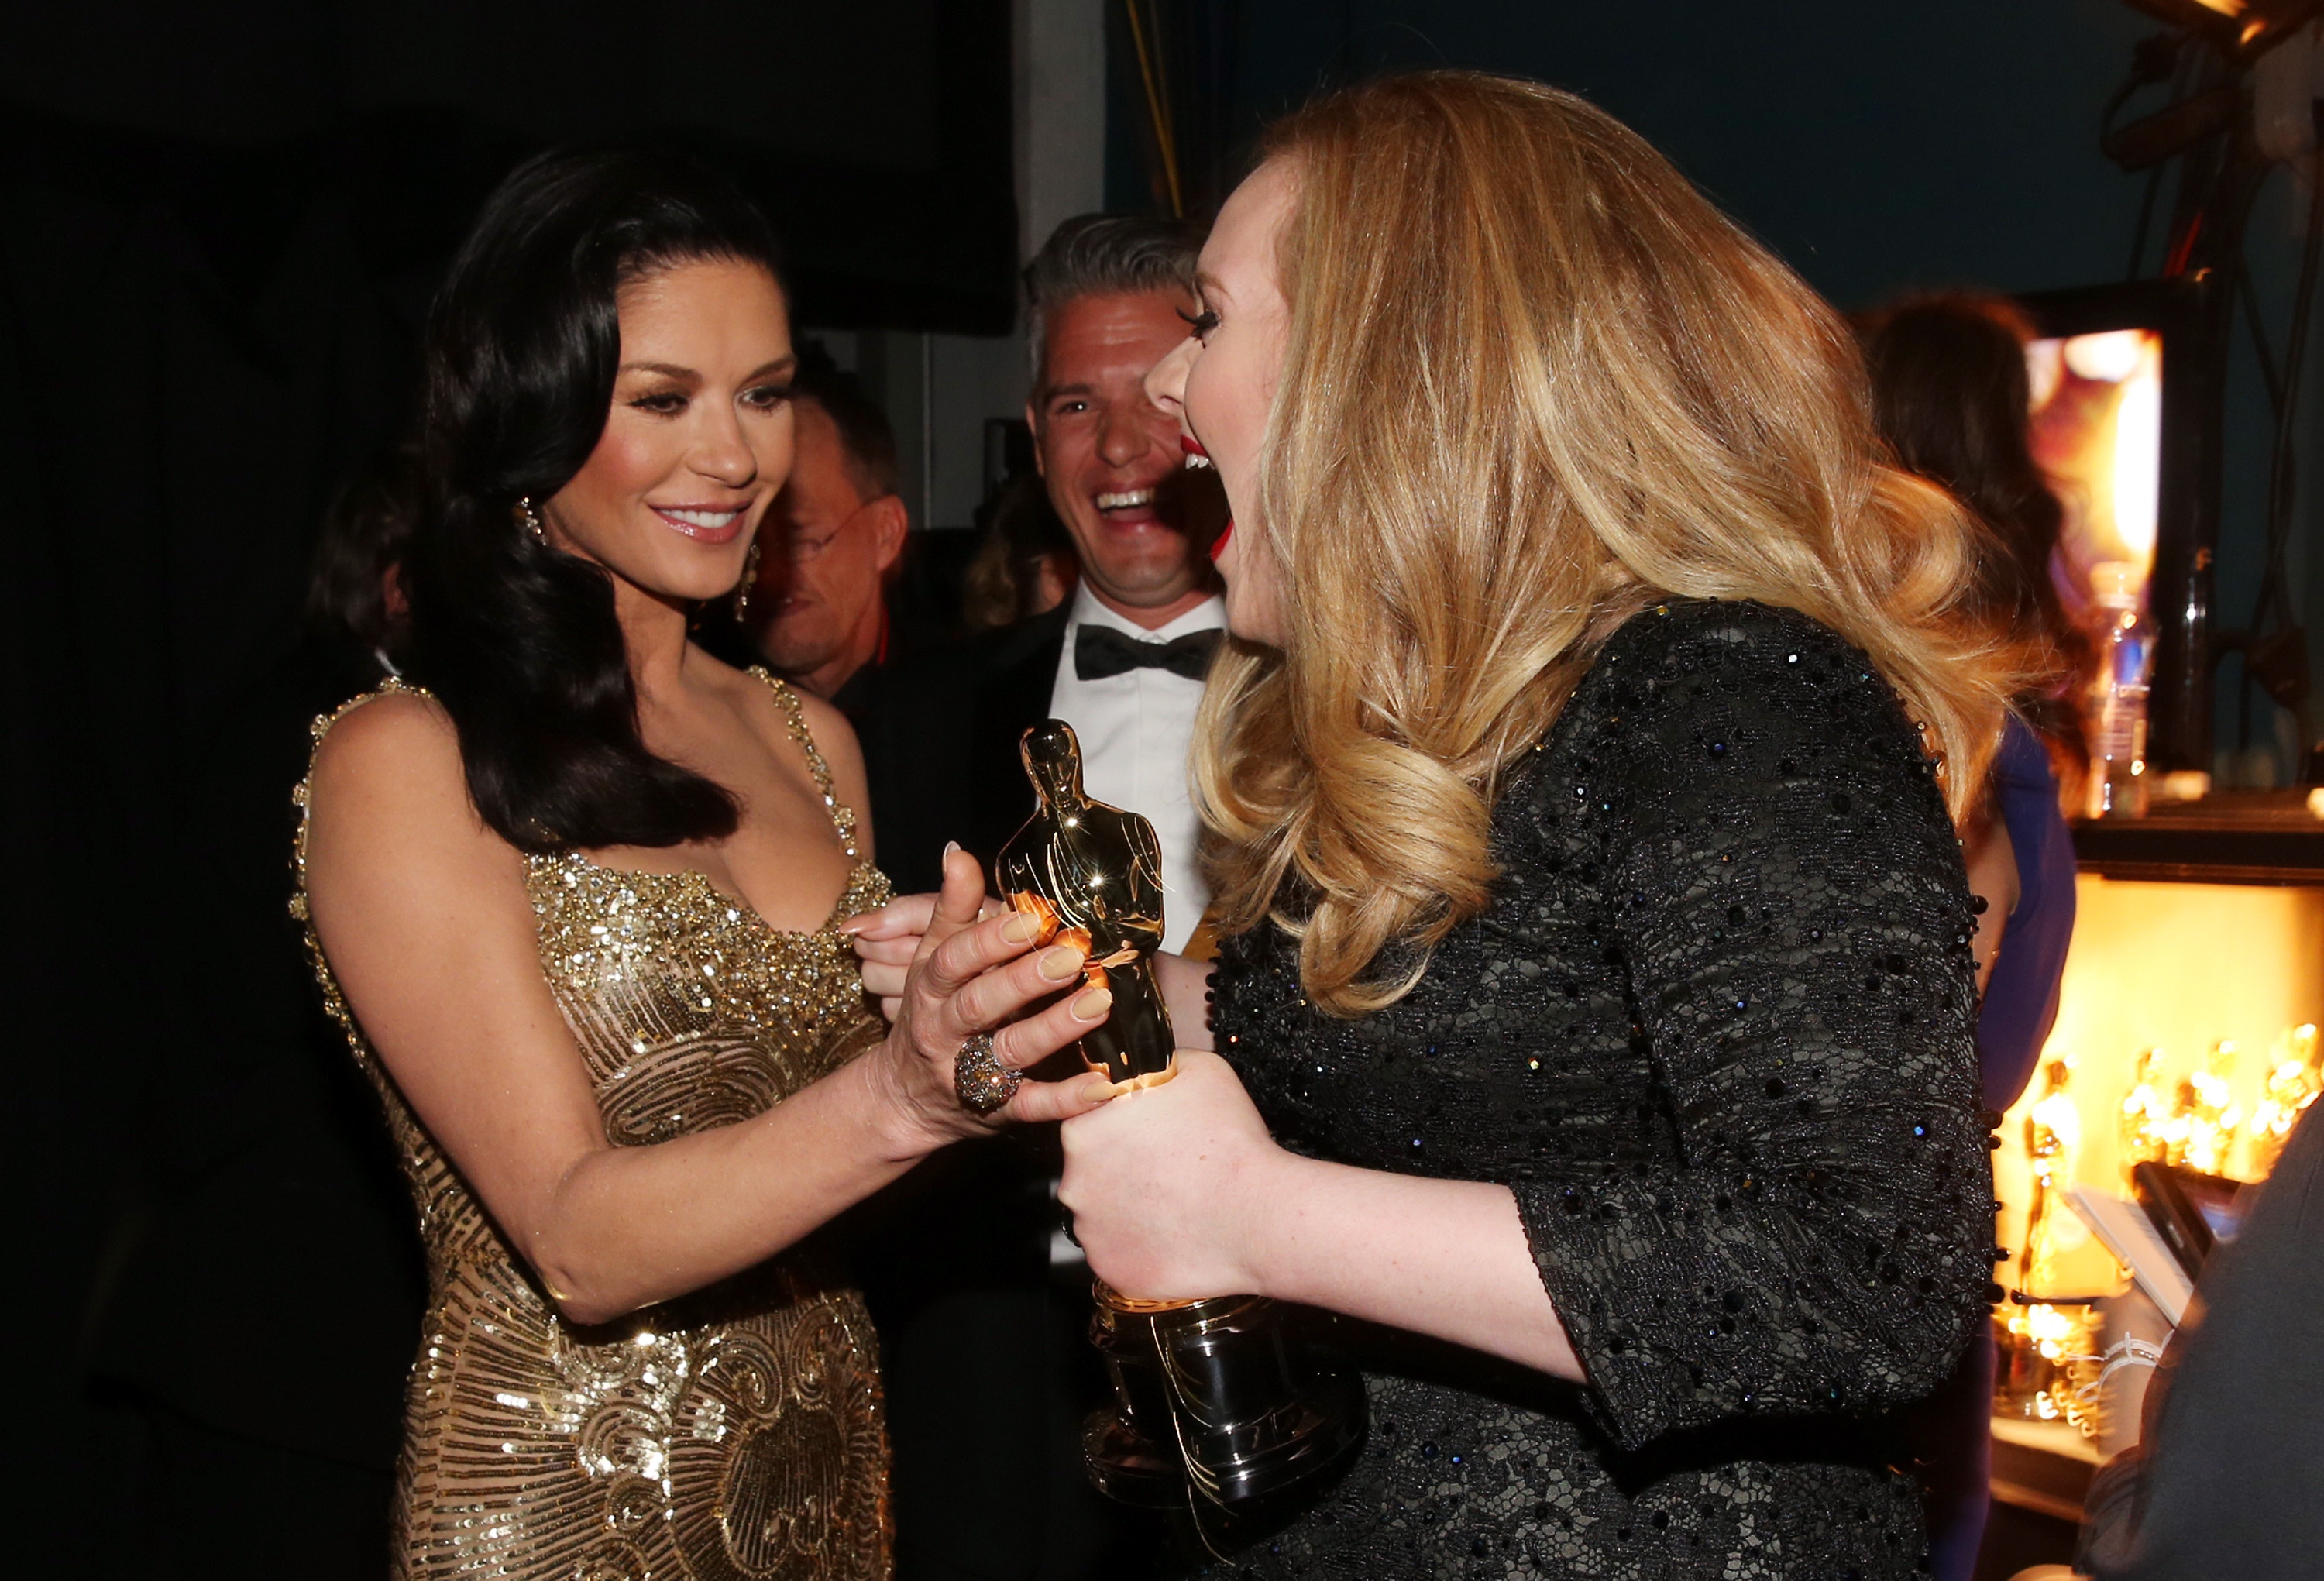 Adele celebrated her win with Catherine Zeta-Jones at the Oscars.